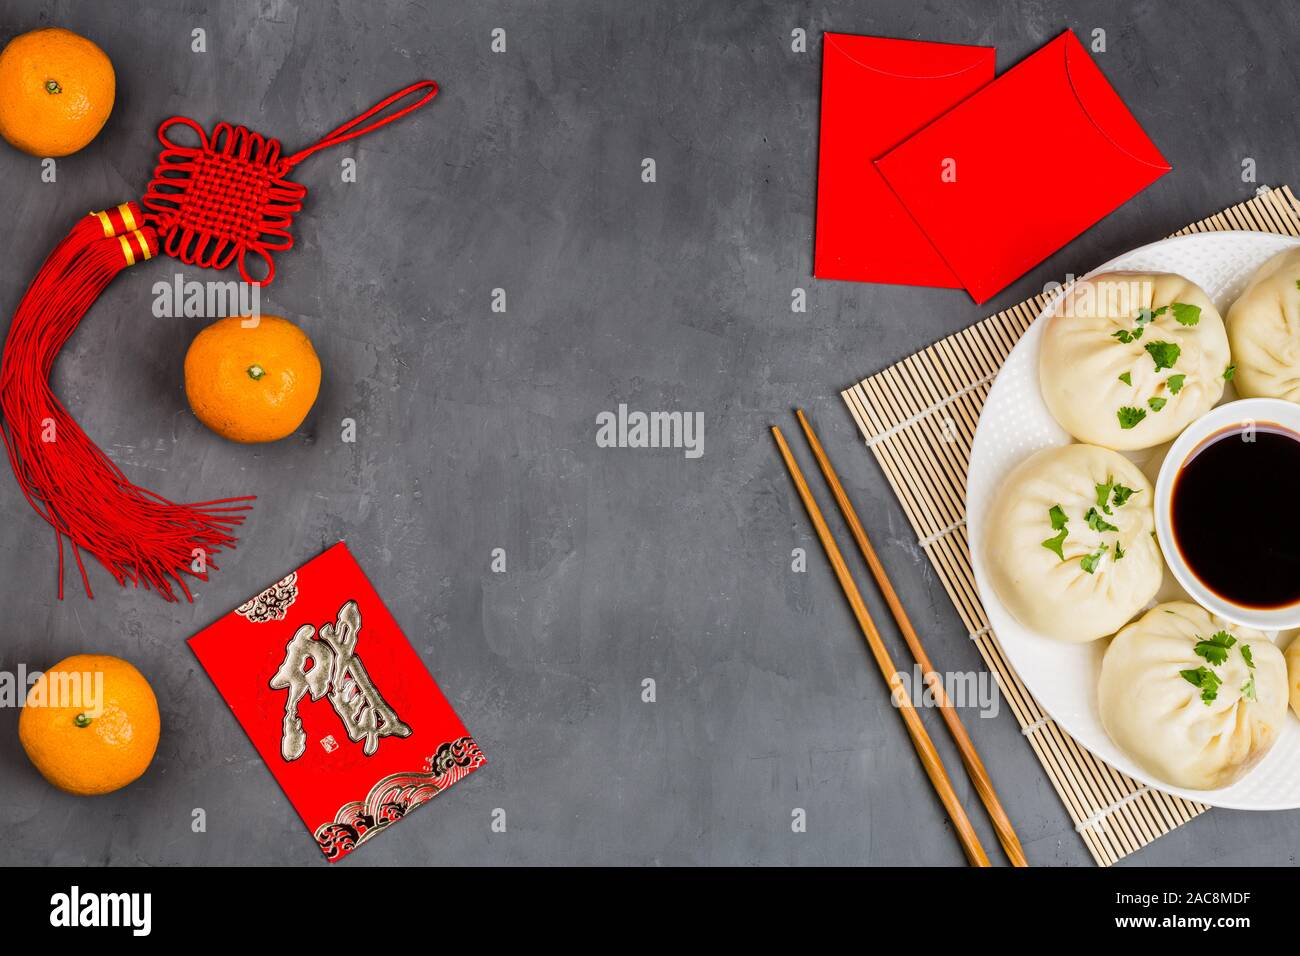 Chinese New Year decoration with dumplings, tangerines, soy sauce, chopsticks, red envelopes on gray concrete background. Happy Chinese new year 2020 Stock Photo